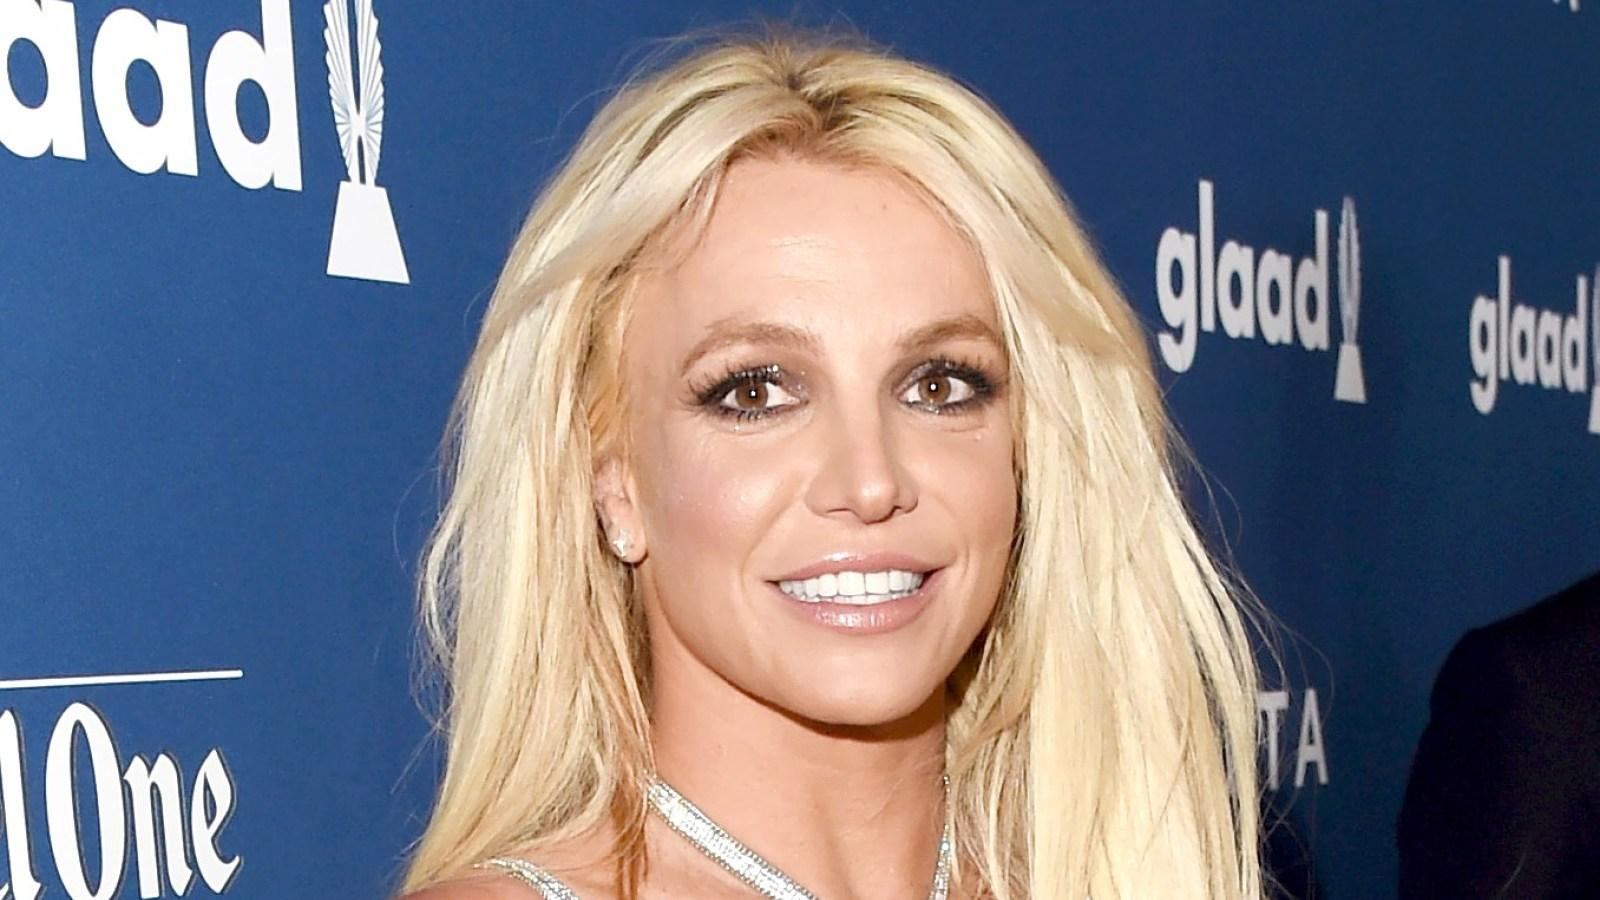 Police dropped charges against Britney Spears